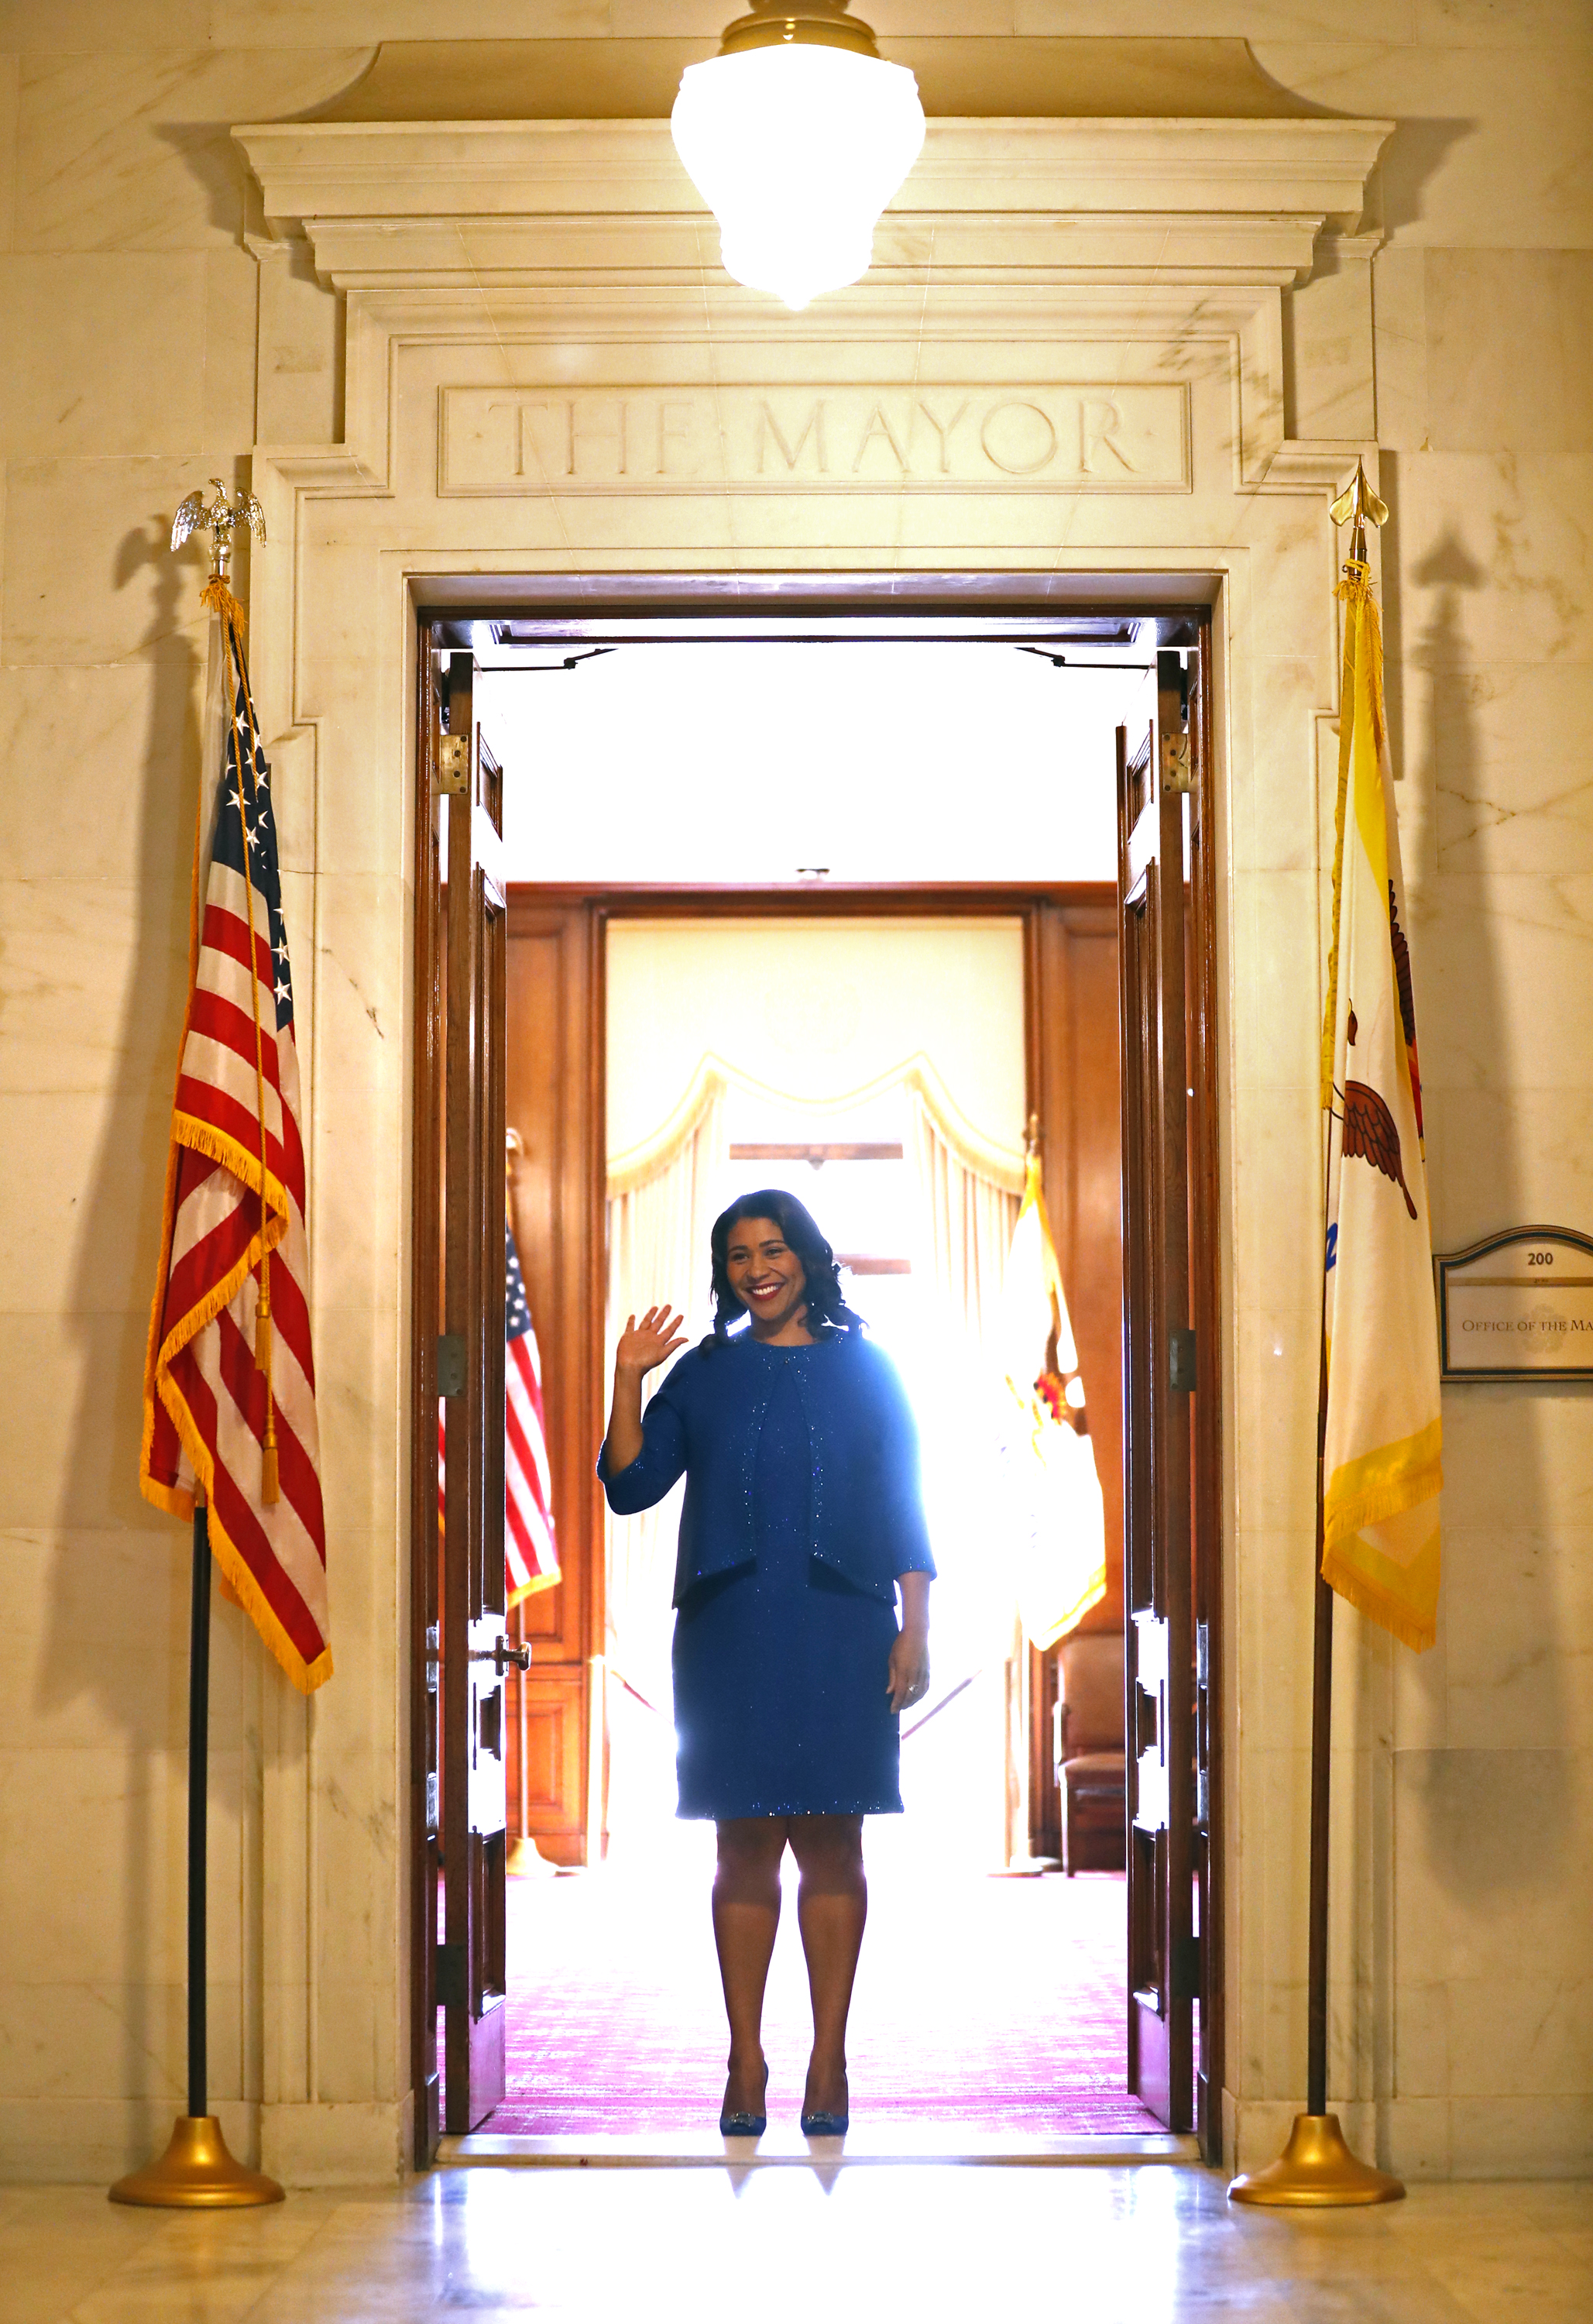 <div class='meta'><div class='origin-logo' data-origin='none'></div><span class='caption-text' data-credit='The Chronicle'>San Francisco Mayor London Breed waves at a well-wisher as she leaves the Mayor's Office before her inauguration at City Hall in San Francisco, Calif. on Wednesday, July 11, 2018.</span></div>